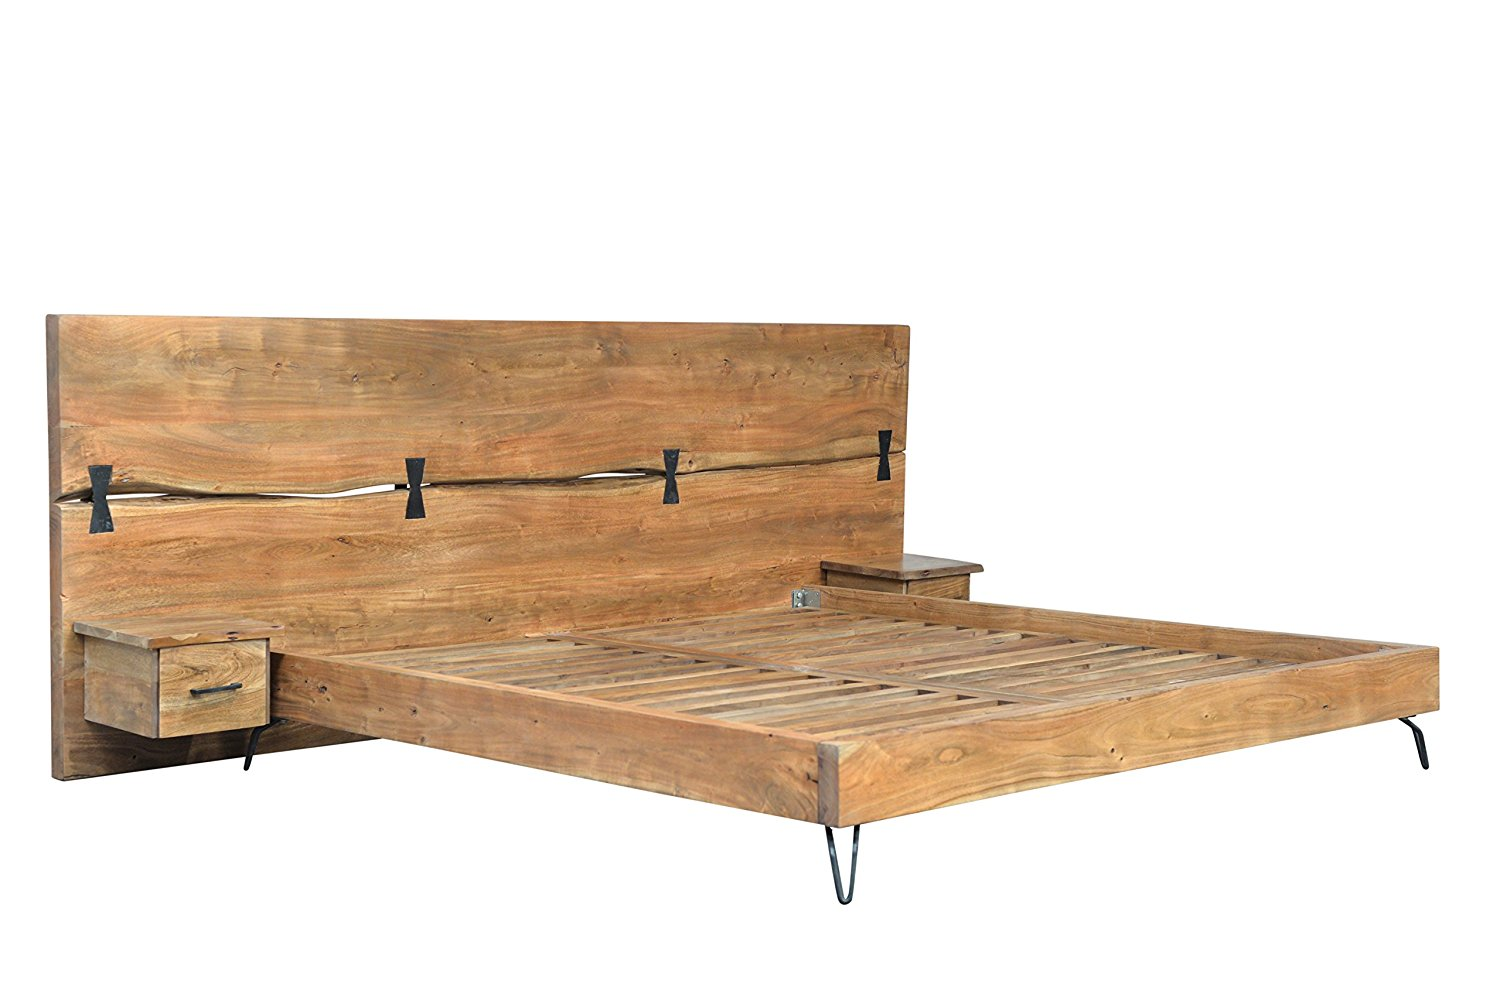 Buy Cdi Furniture Driftwood Collection Traditional Rustic Acacia Wood Bed With Raw Iron Metal Legs 2 Drawers Queen In Cheap Price On Alibaba Com